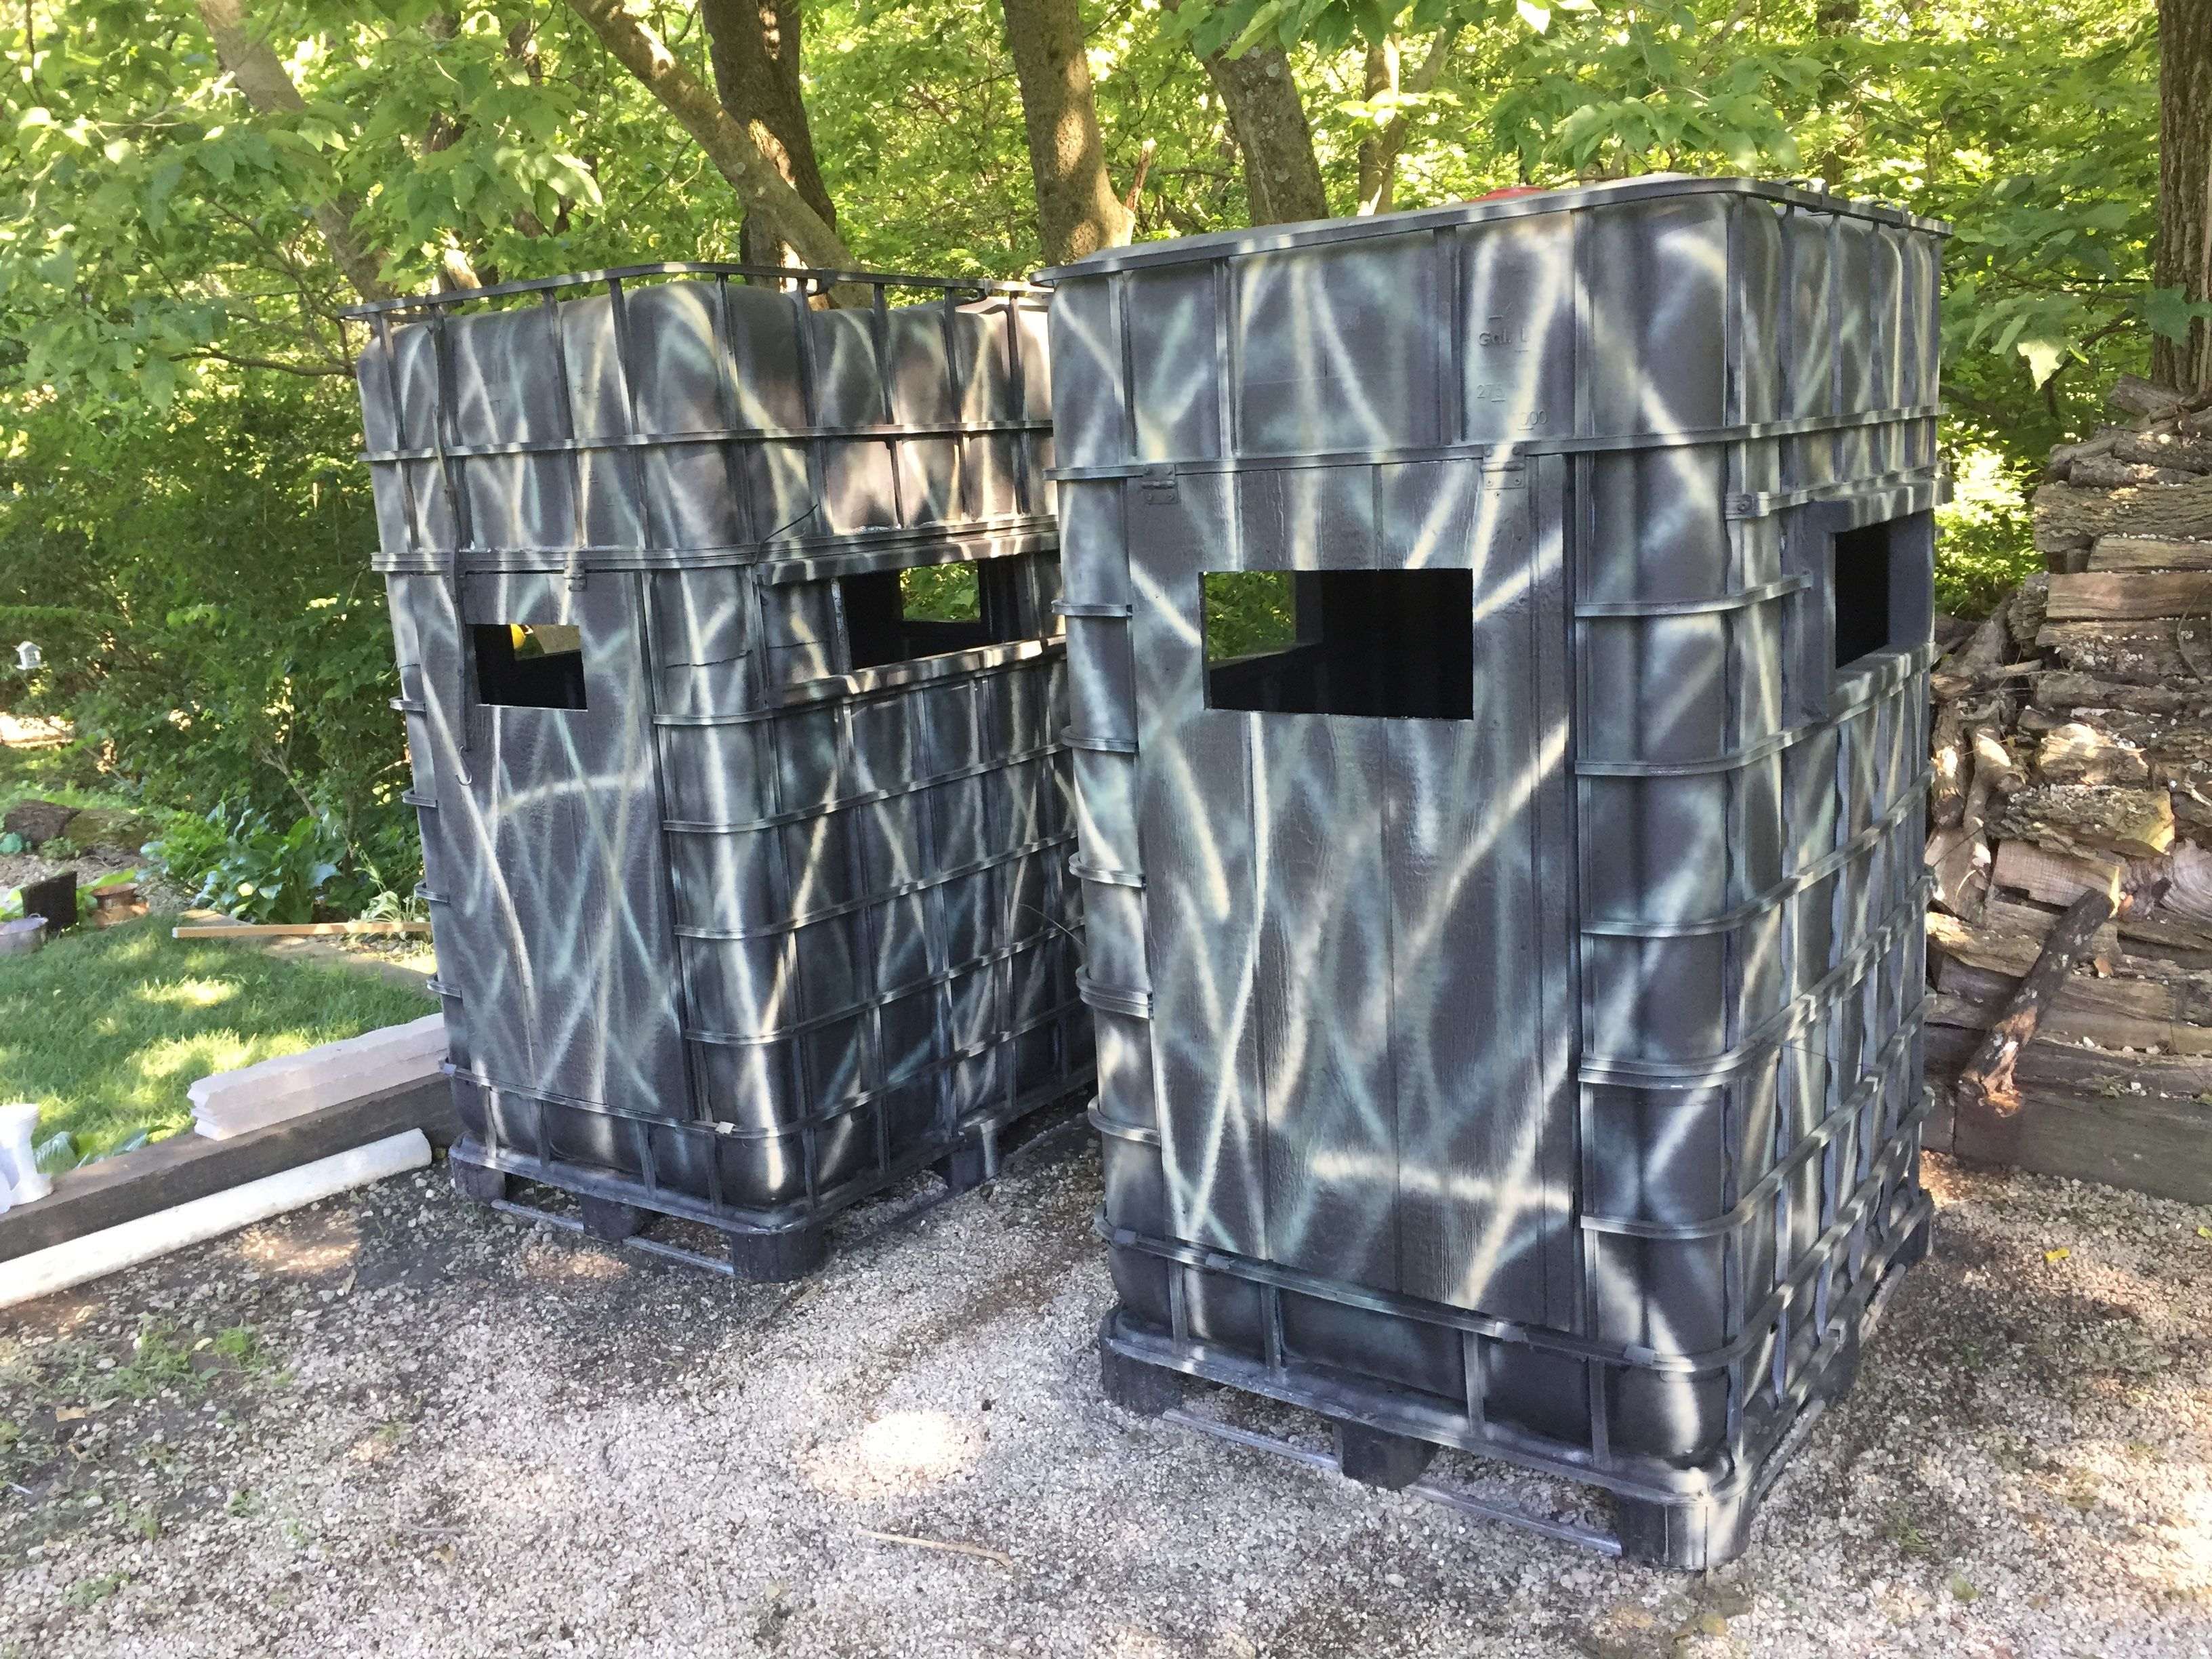 ground blind don dont tenpoint whitetail articles oct mistakes a of brad blog make fenson out t from blinds hunting these shooting tips deer news